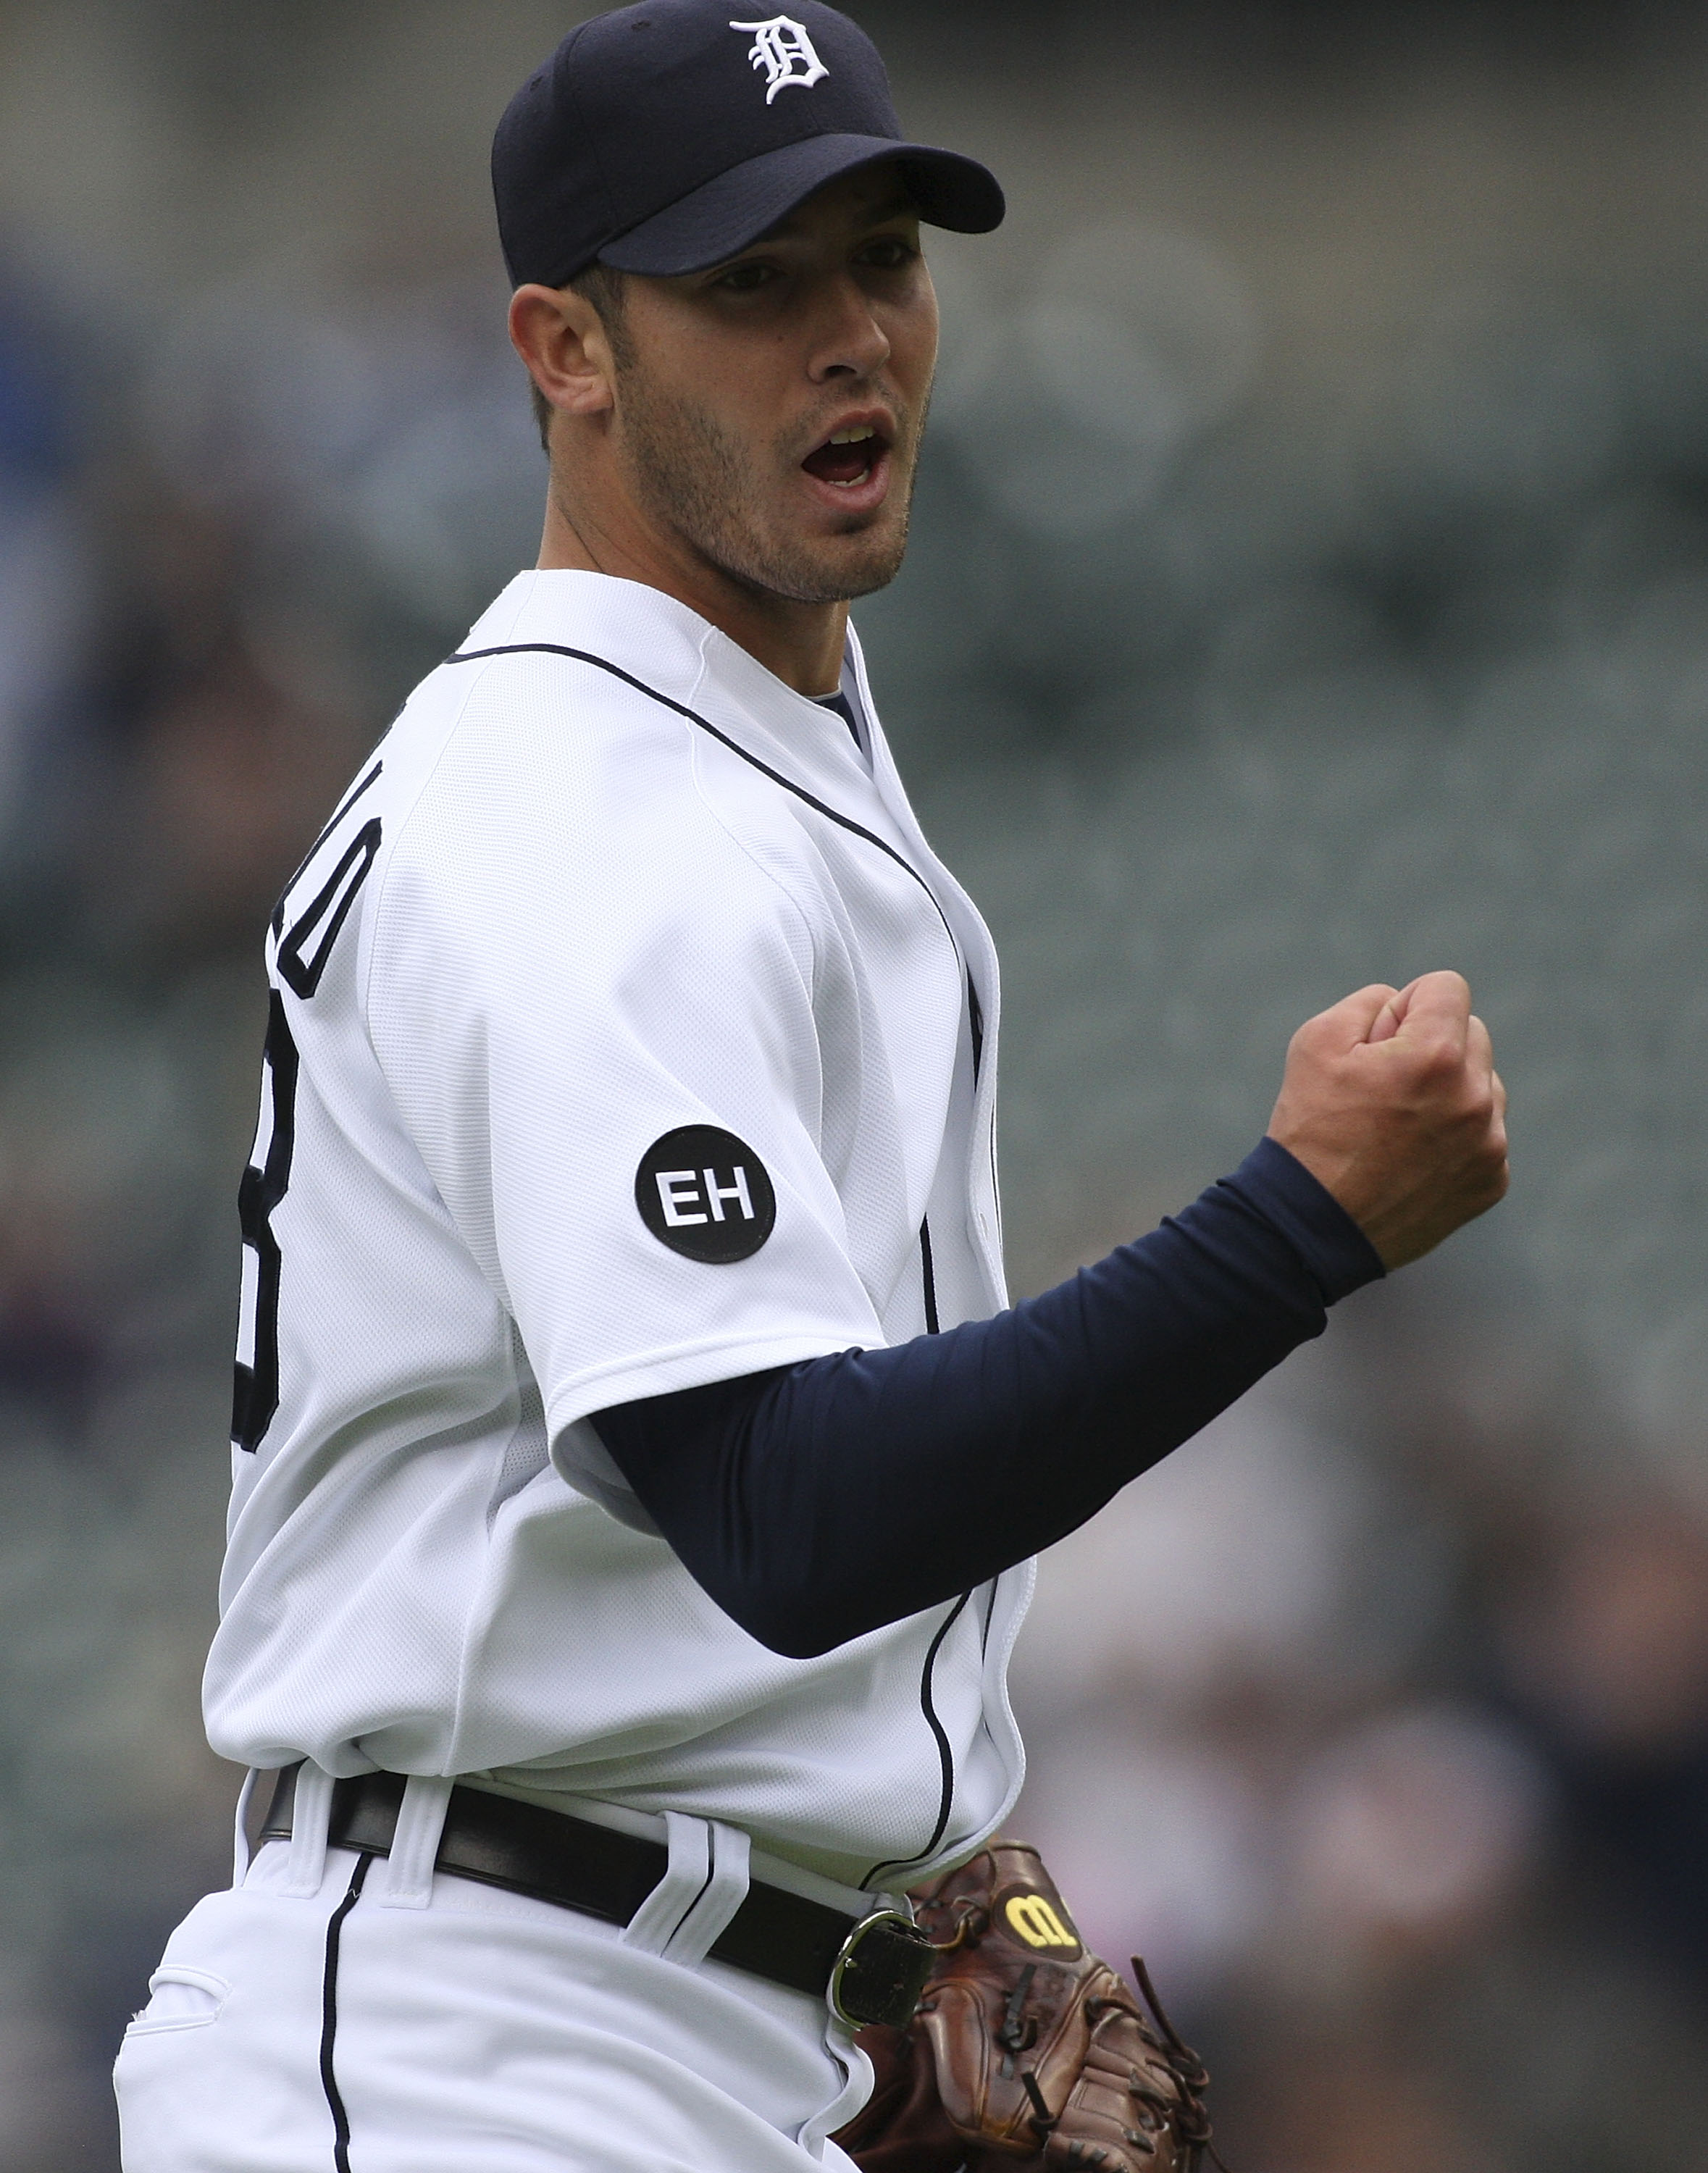 DETROIT - MAY 12:  Rick Porcello #48 of the Detroit Tigers reacts after the final out in the sixth inning against the New York Yankees during the game on May 12, 2010 at Comerica Park in Detroit, Michigan.  (Photo by Leon Halip/Getty Images)